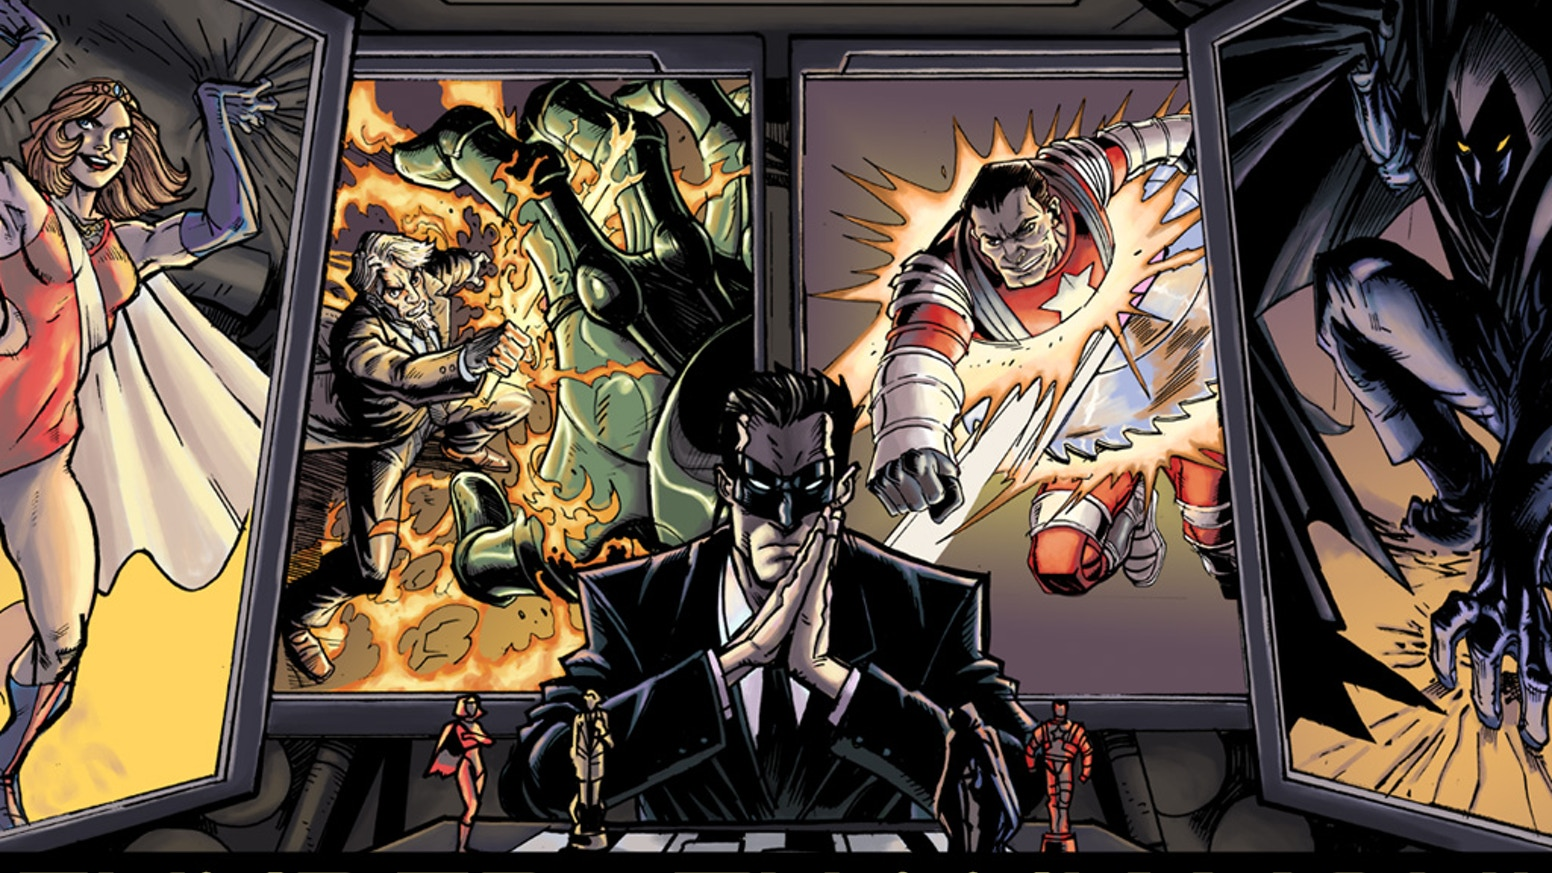 A PvP multi-player superhero themed deckbuilding game, set in the Emergents Universe created by Brian David-Marshall.